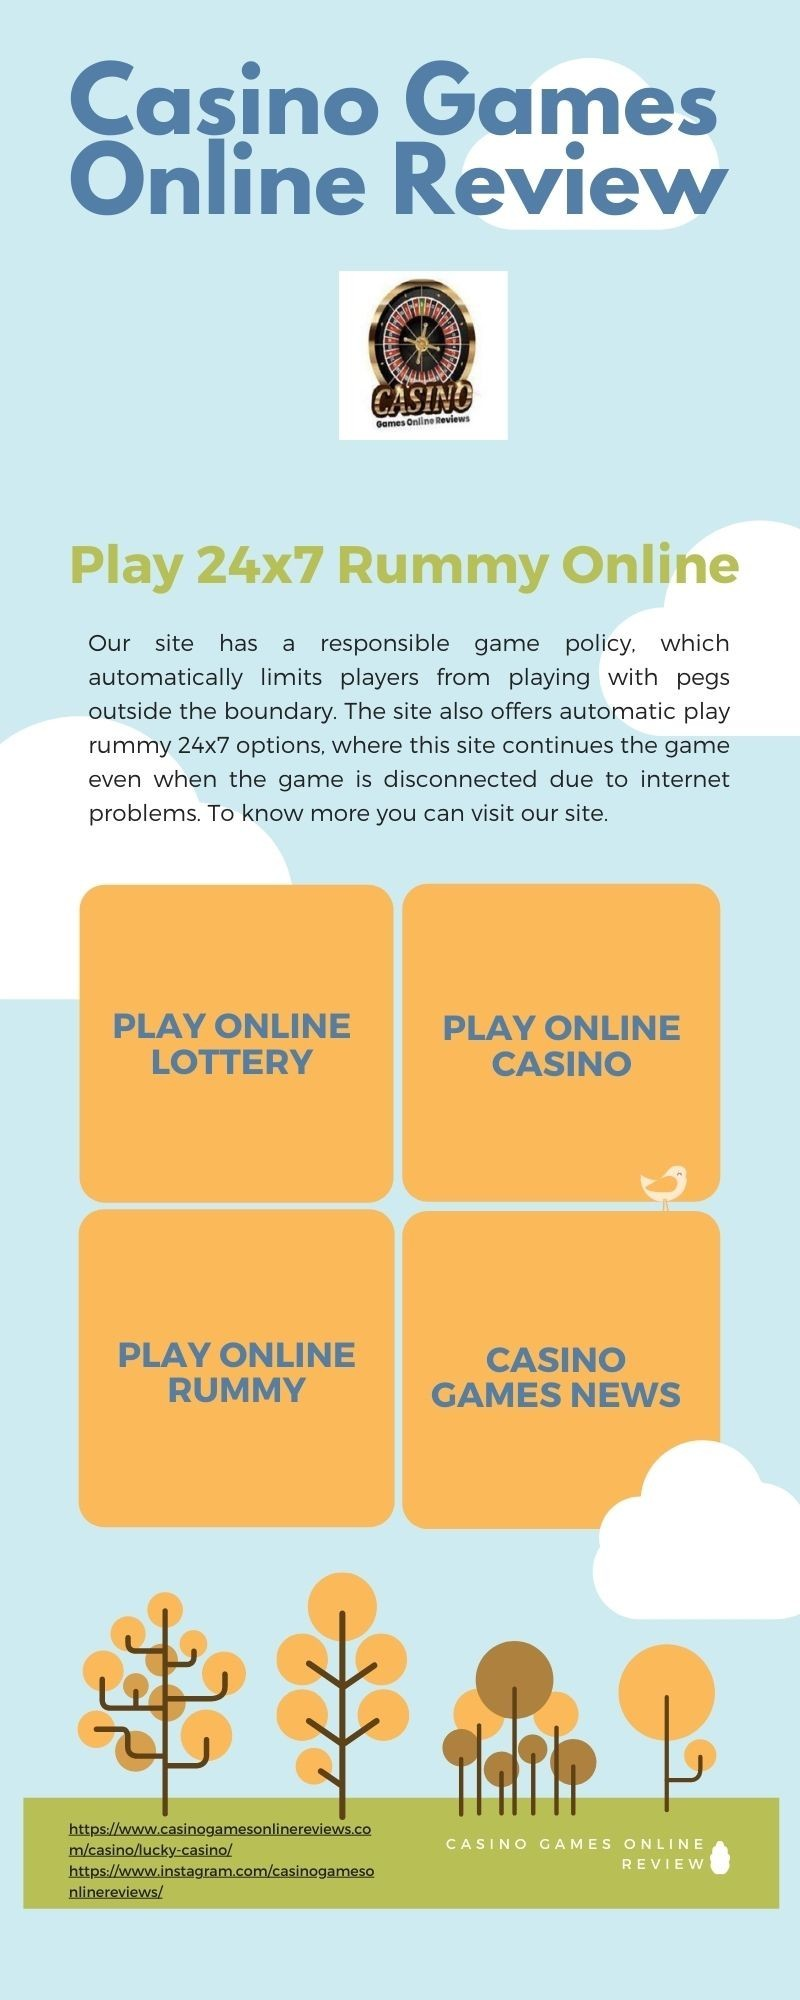 Play 24x7 Rummy Online - Relaxation And Rewards Galore